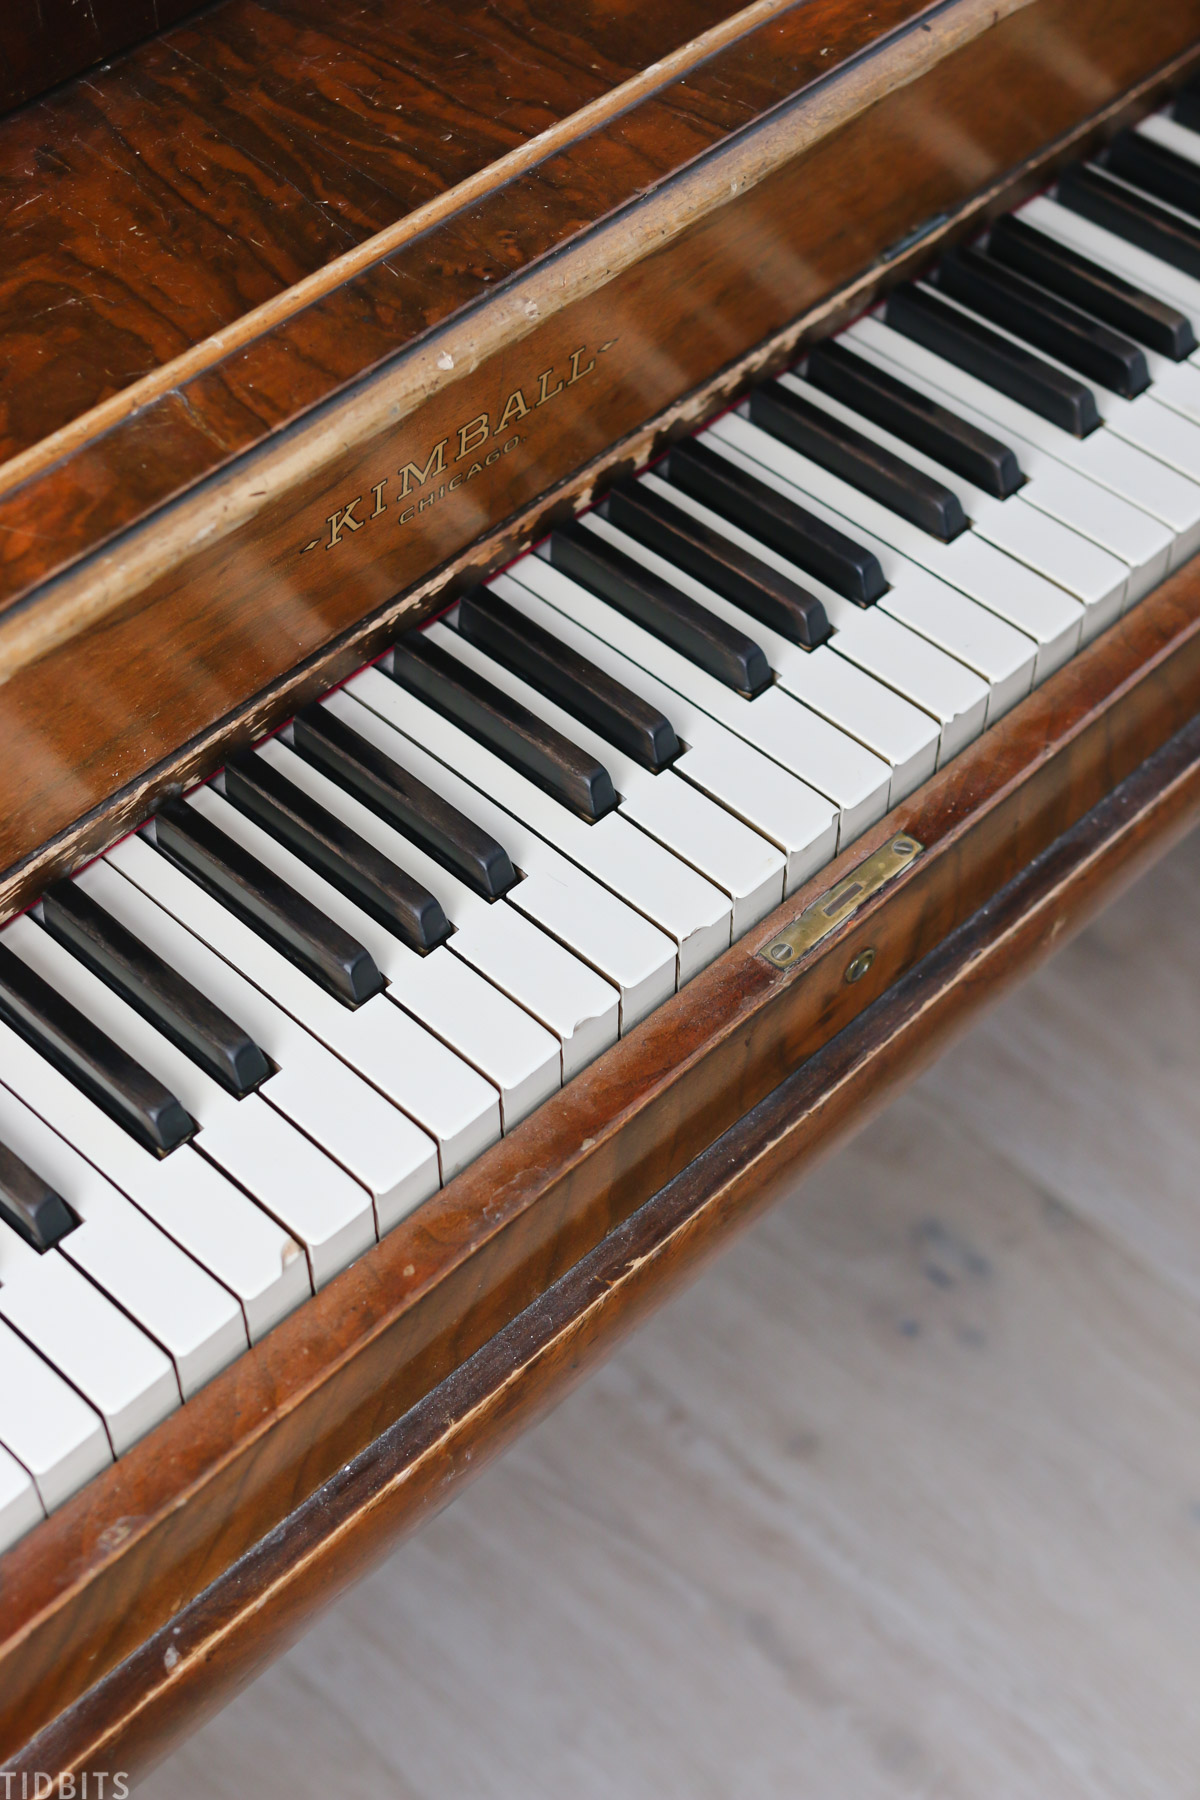 keys on an old and rustic piano